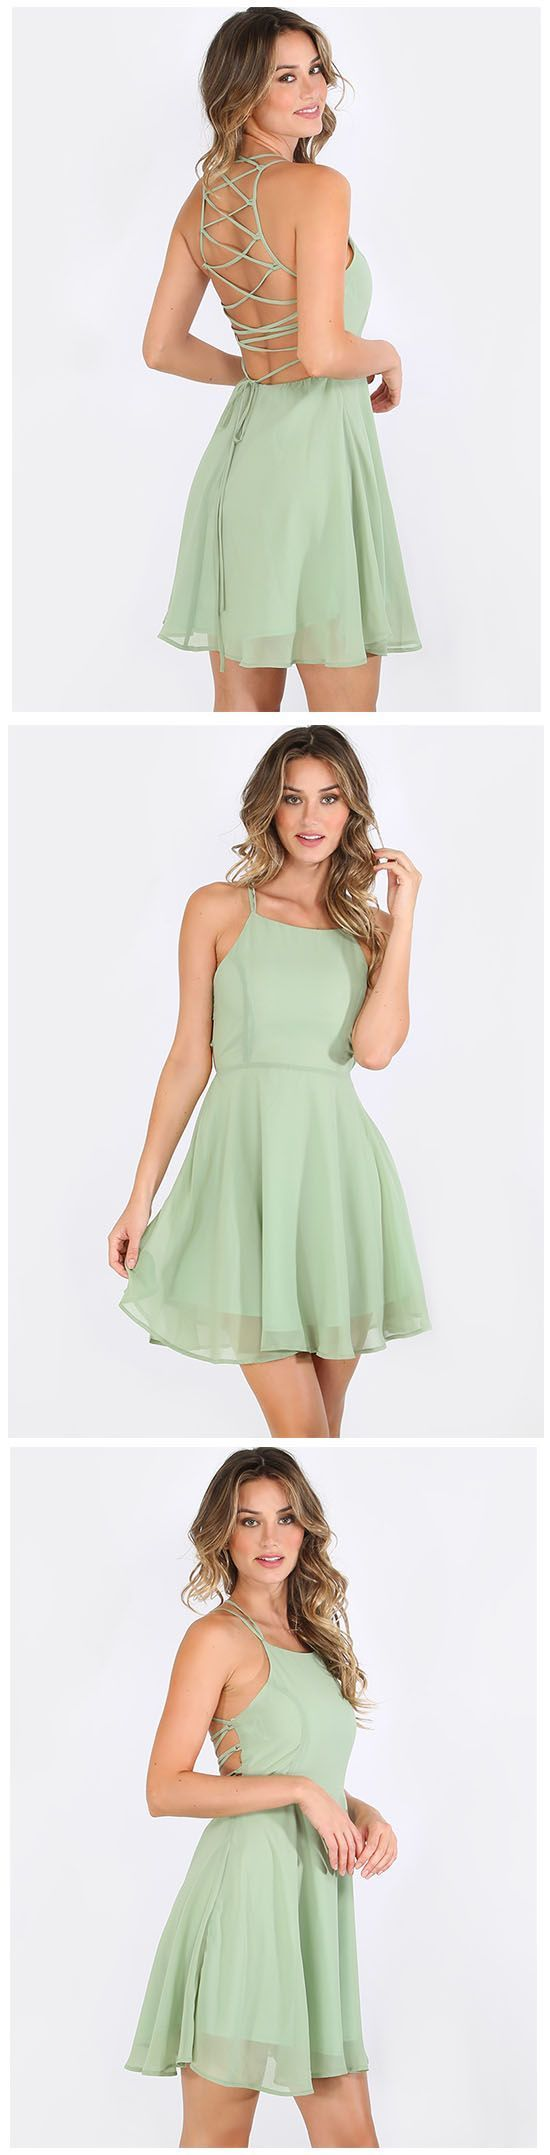 Uhc0033, Homecoming Dress, Chiffon Homecoming Dresses, Cheap Homecoming Gowns, Short Prom Dresses,Sweet dress